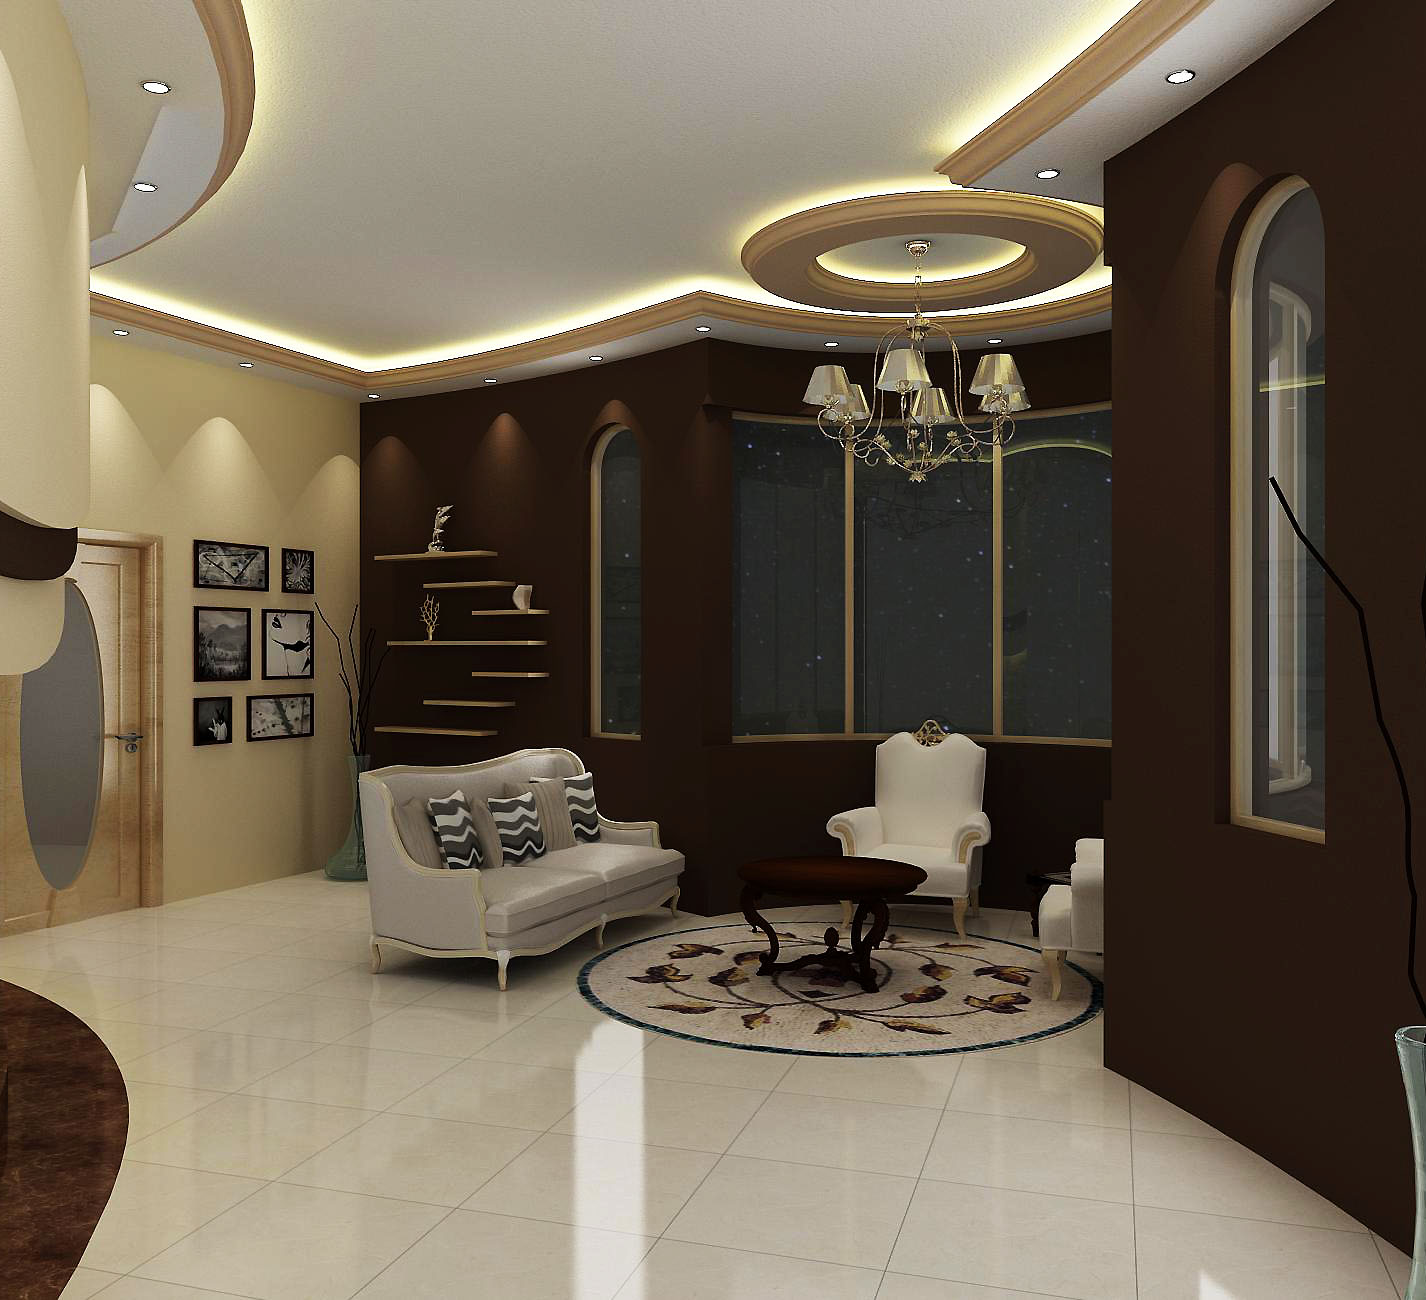 Wasim riaz interior design for a arabic mujlis for Arabic interiors decoration